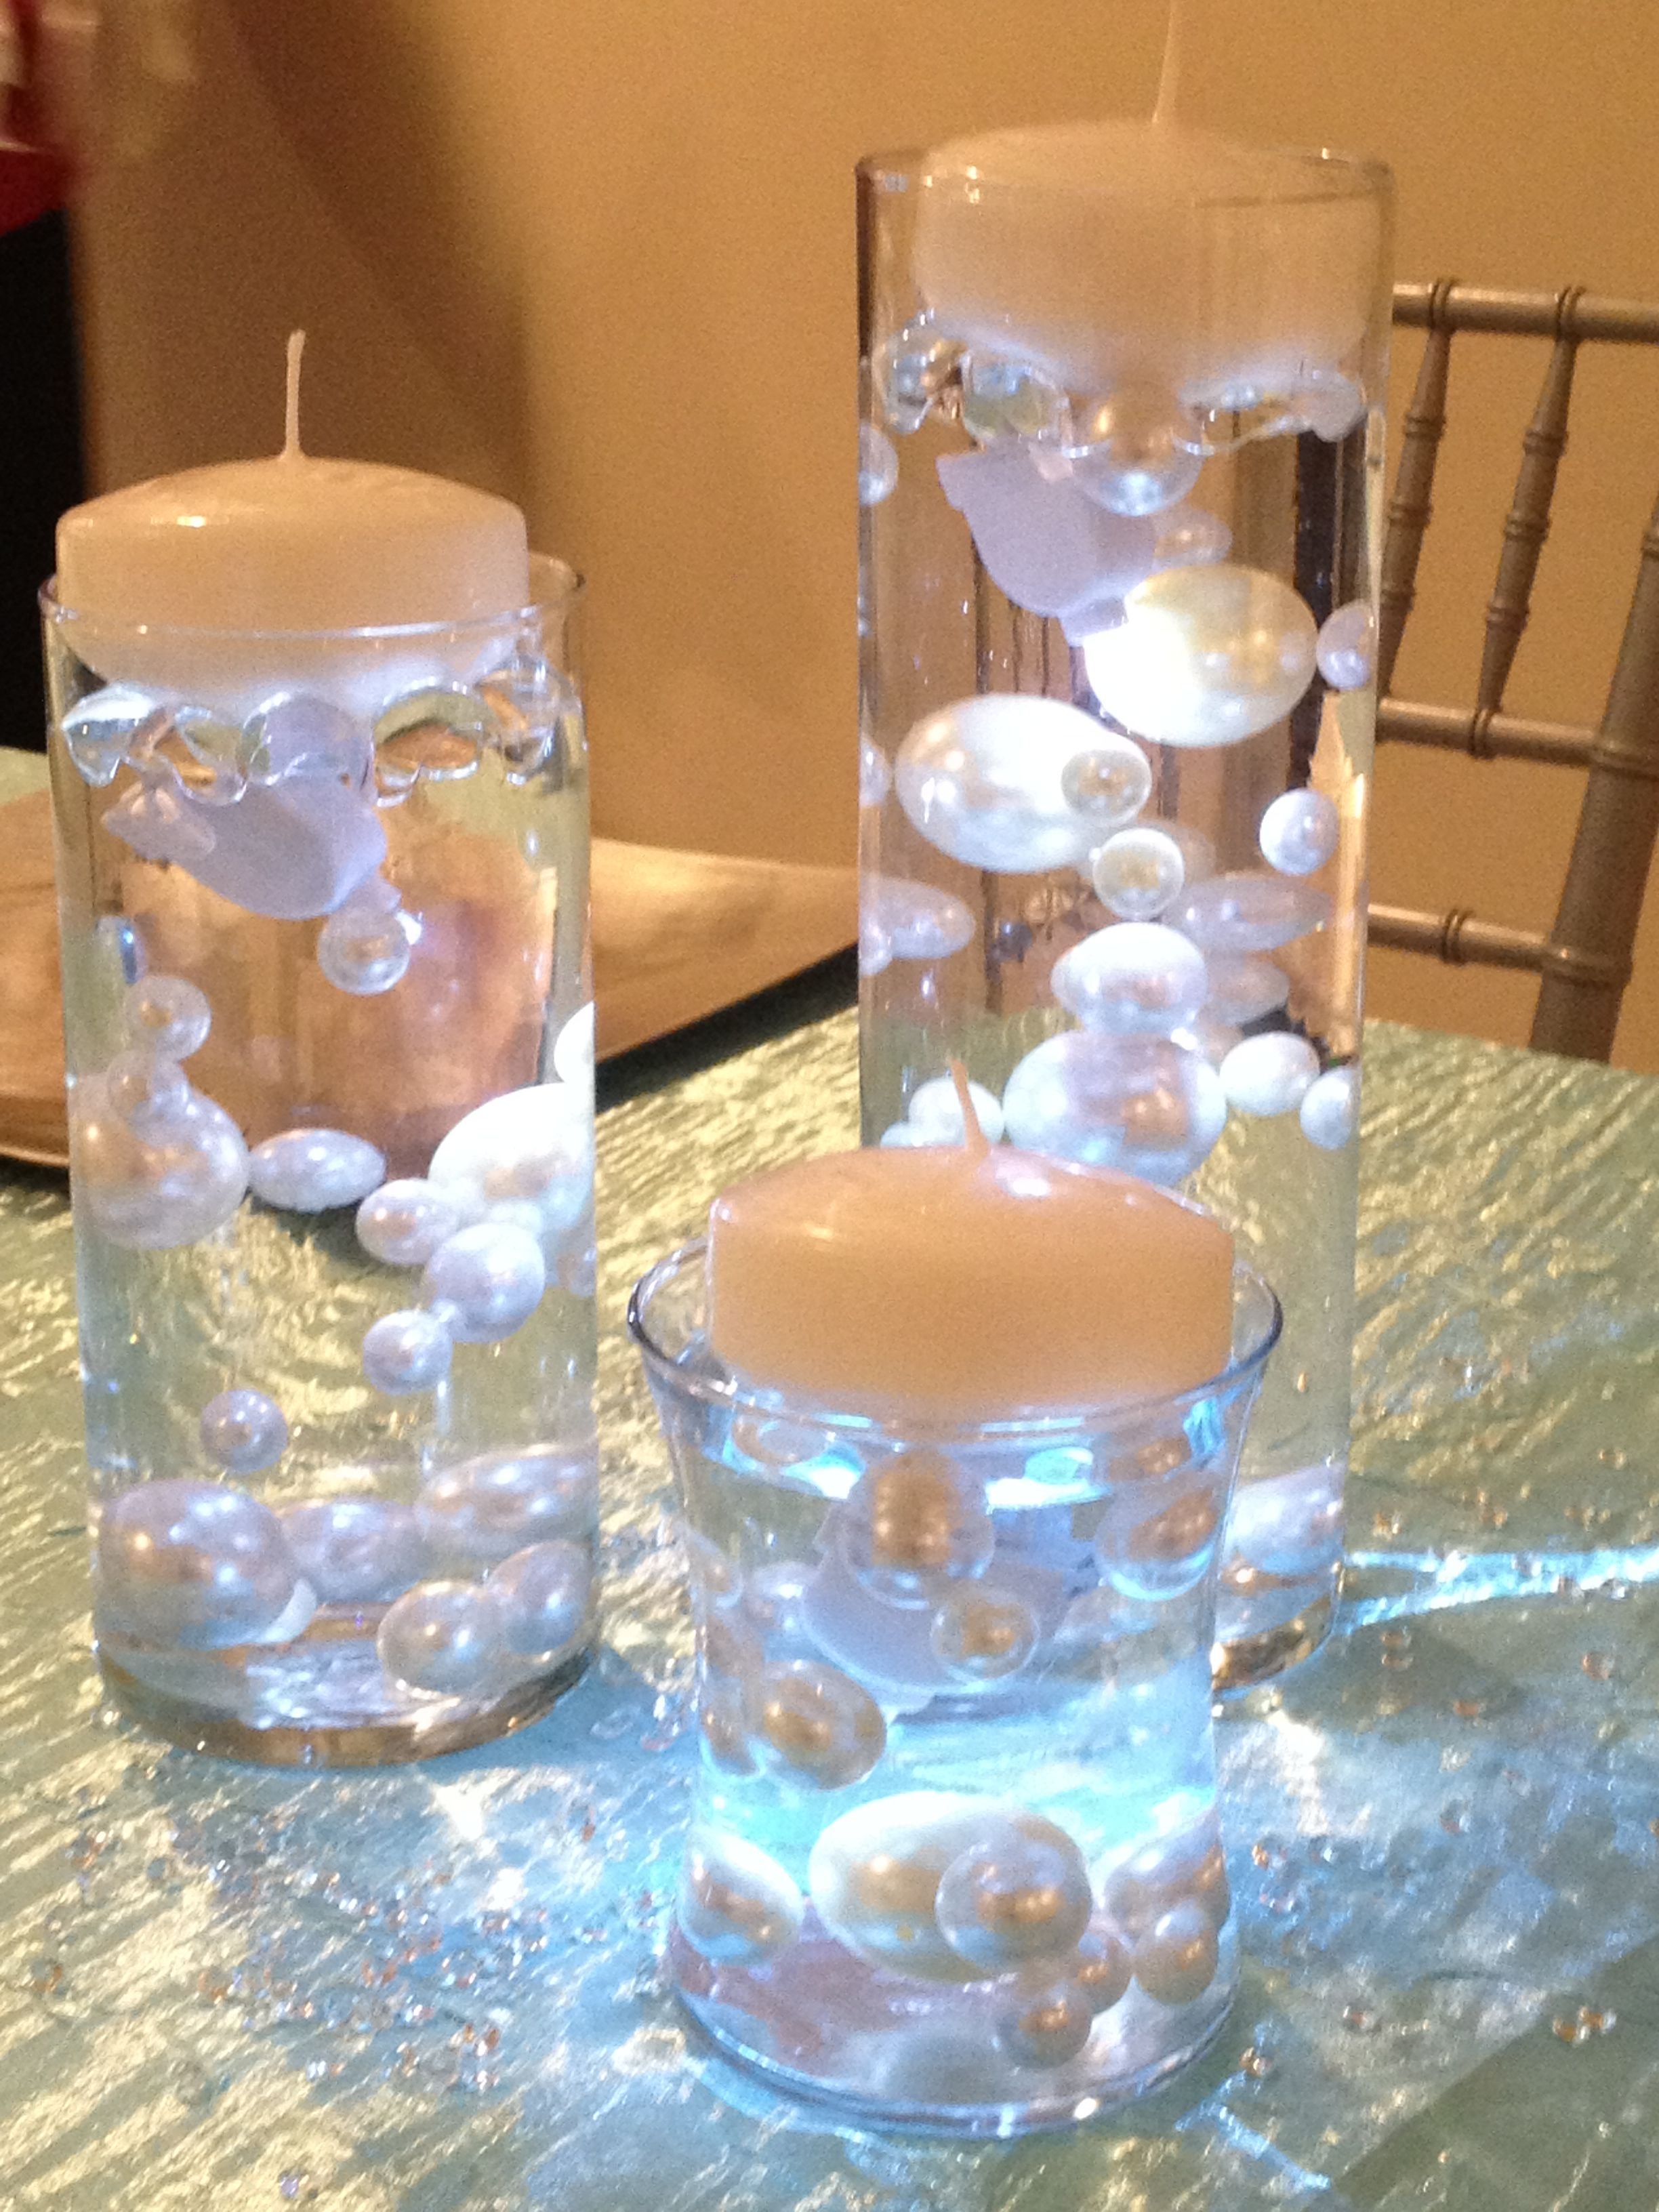 3 tier cylinder vase with pearls and floating candles 3 tier cylinder vase with pearls and floating candles myweddingflowers shortcenterpieces weddingreception floridaeventfo Gallery